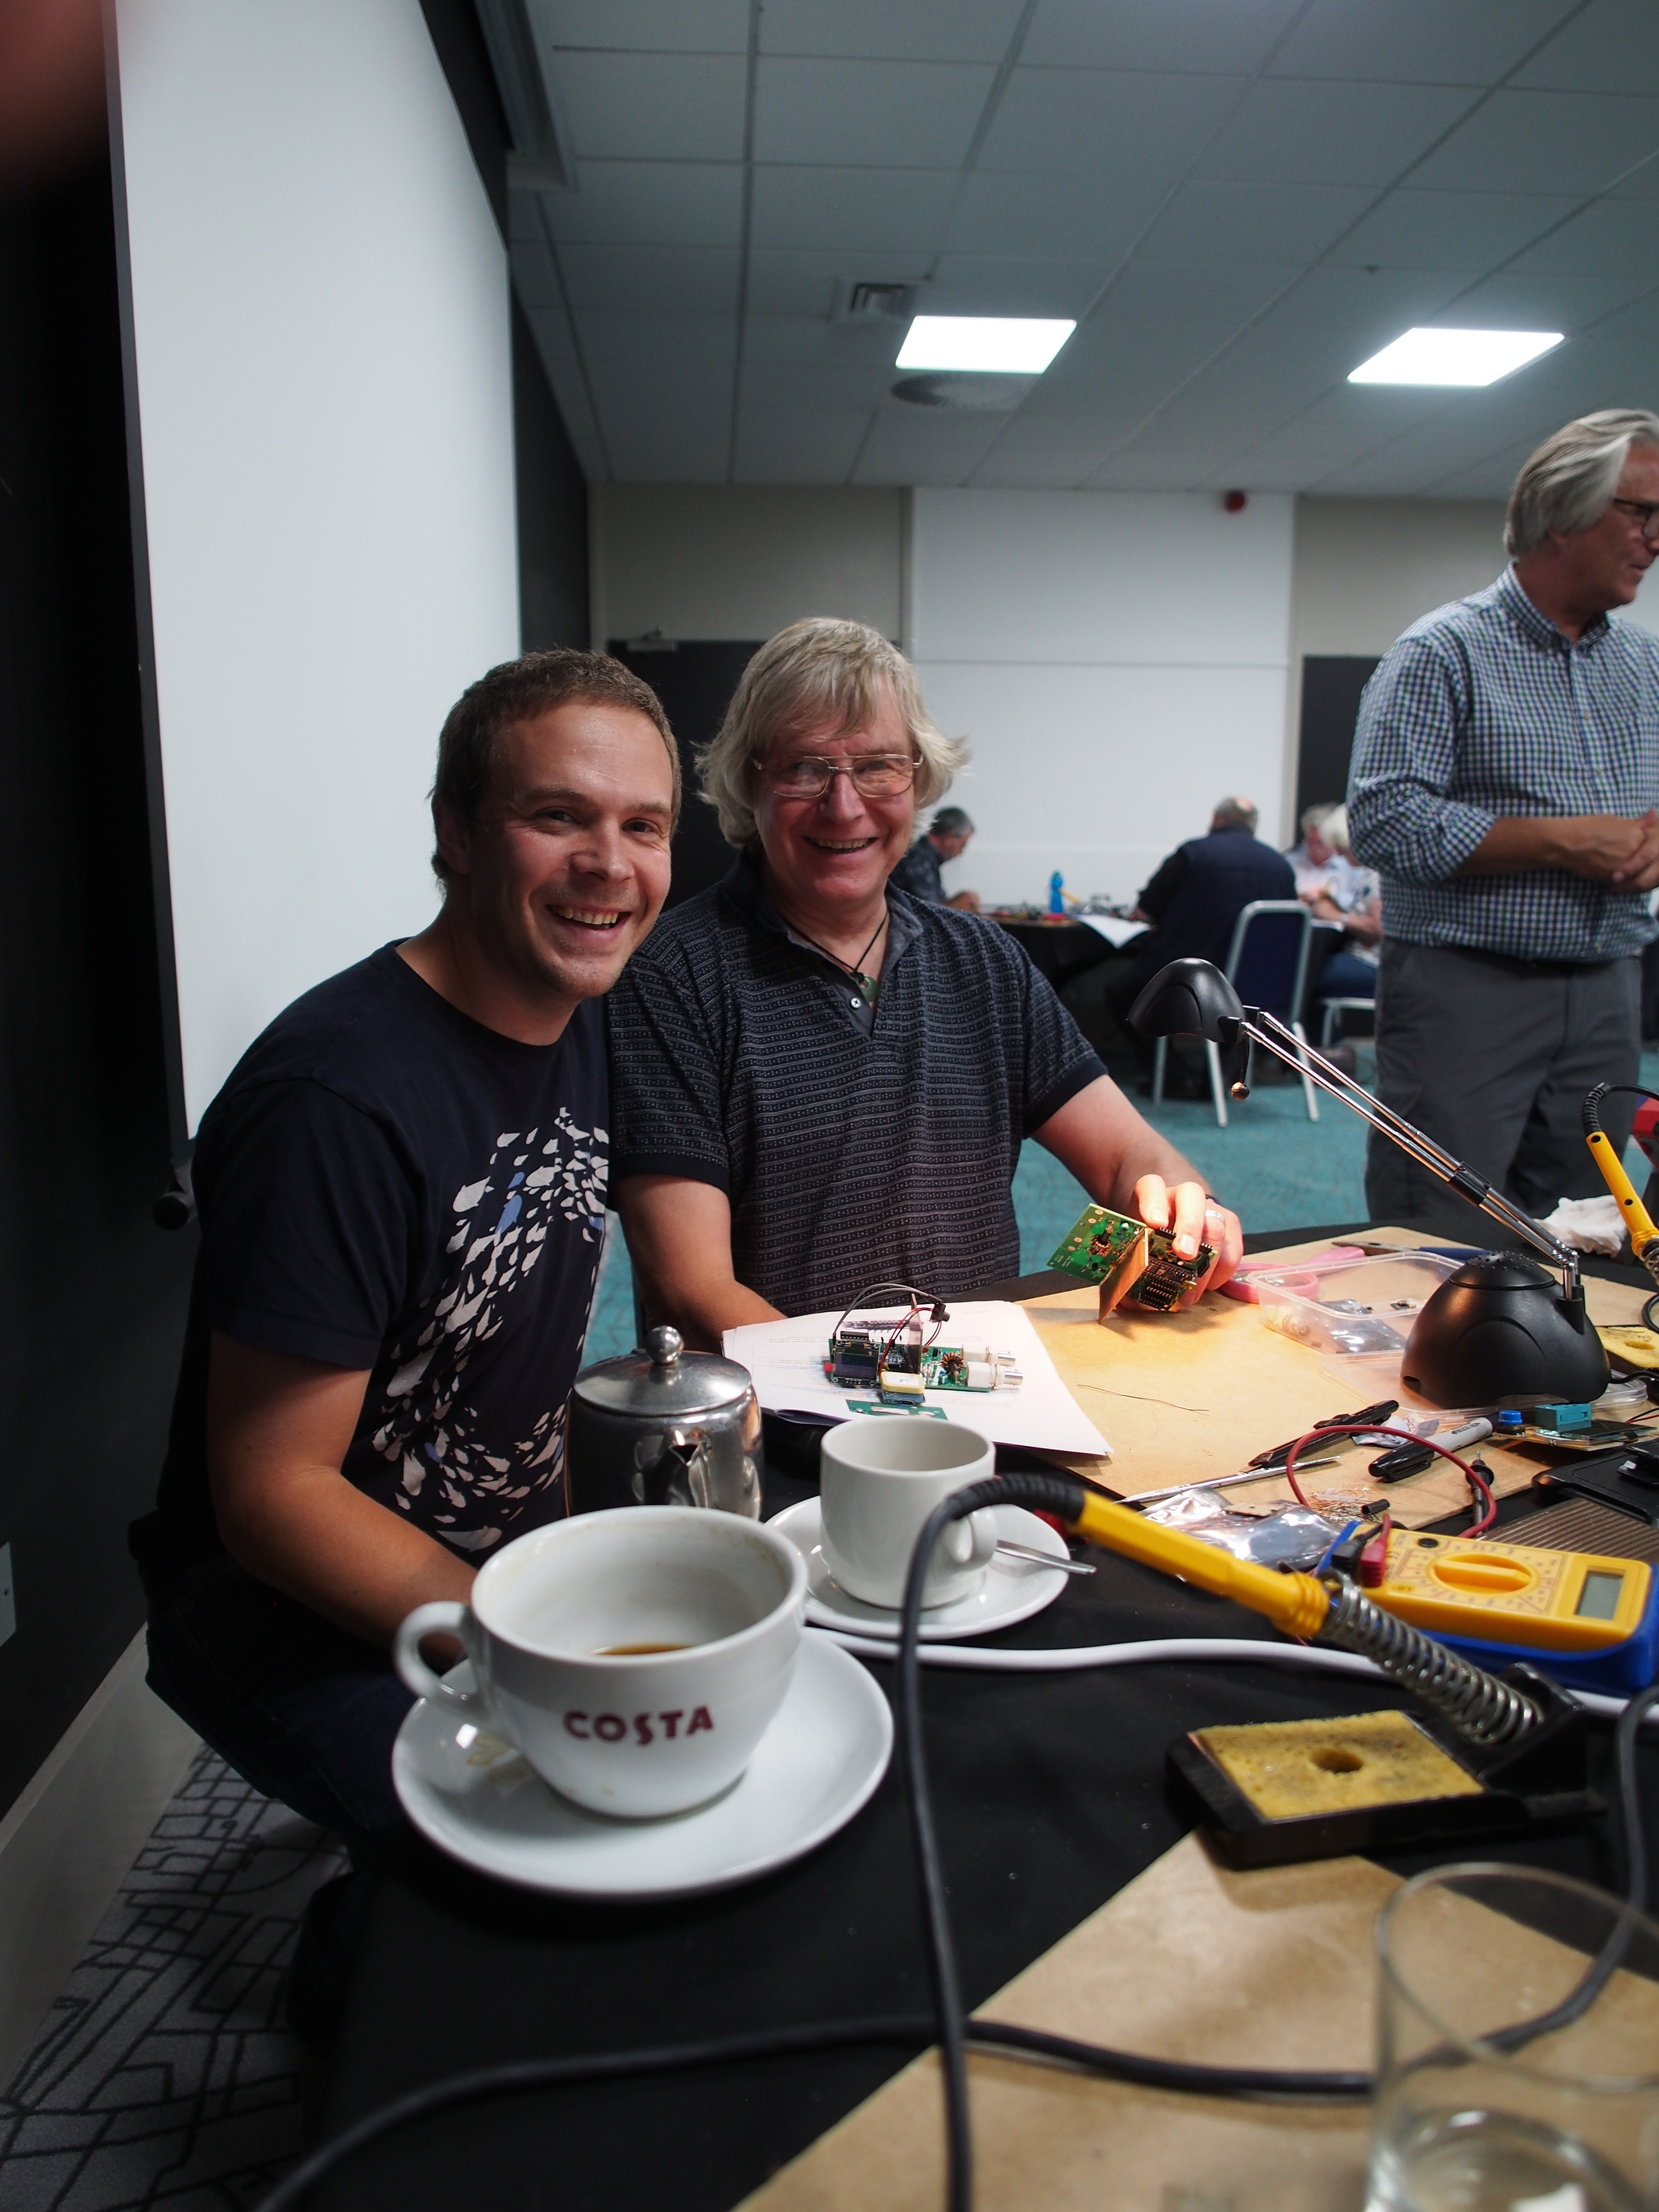 M0PUH and MW6KPF at the buildathon